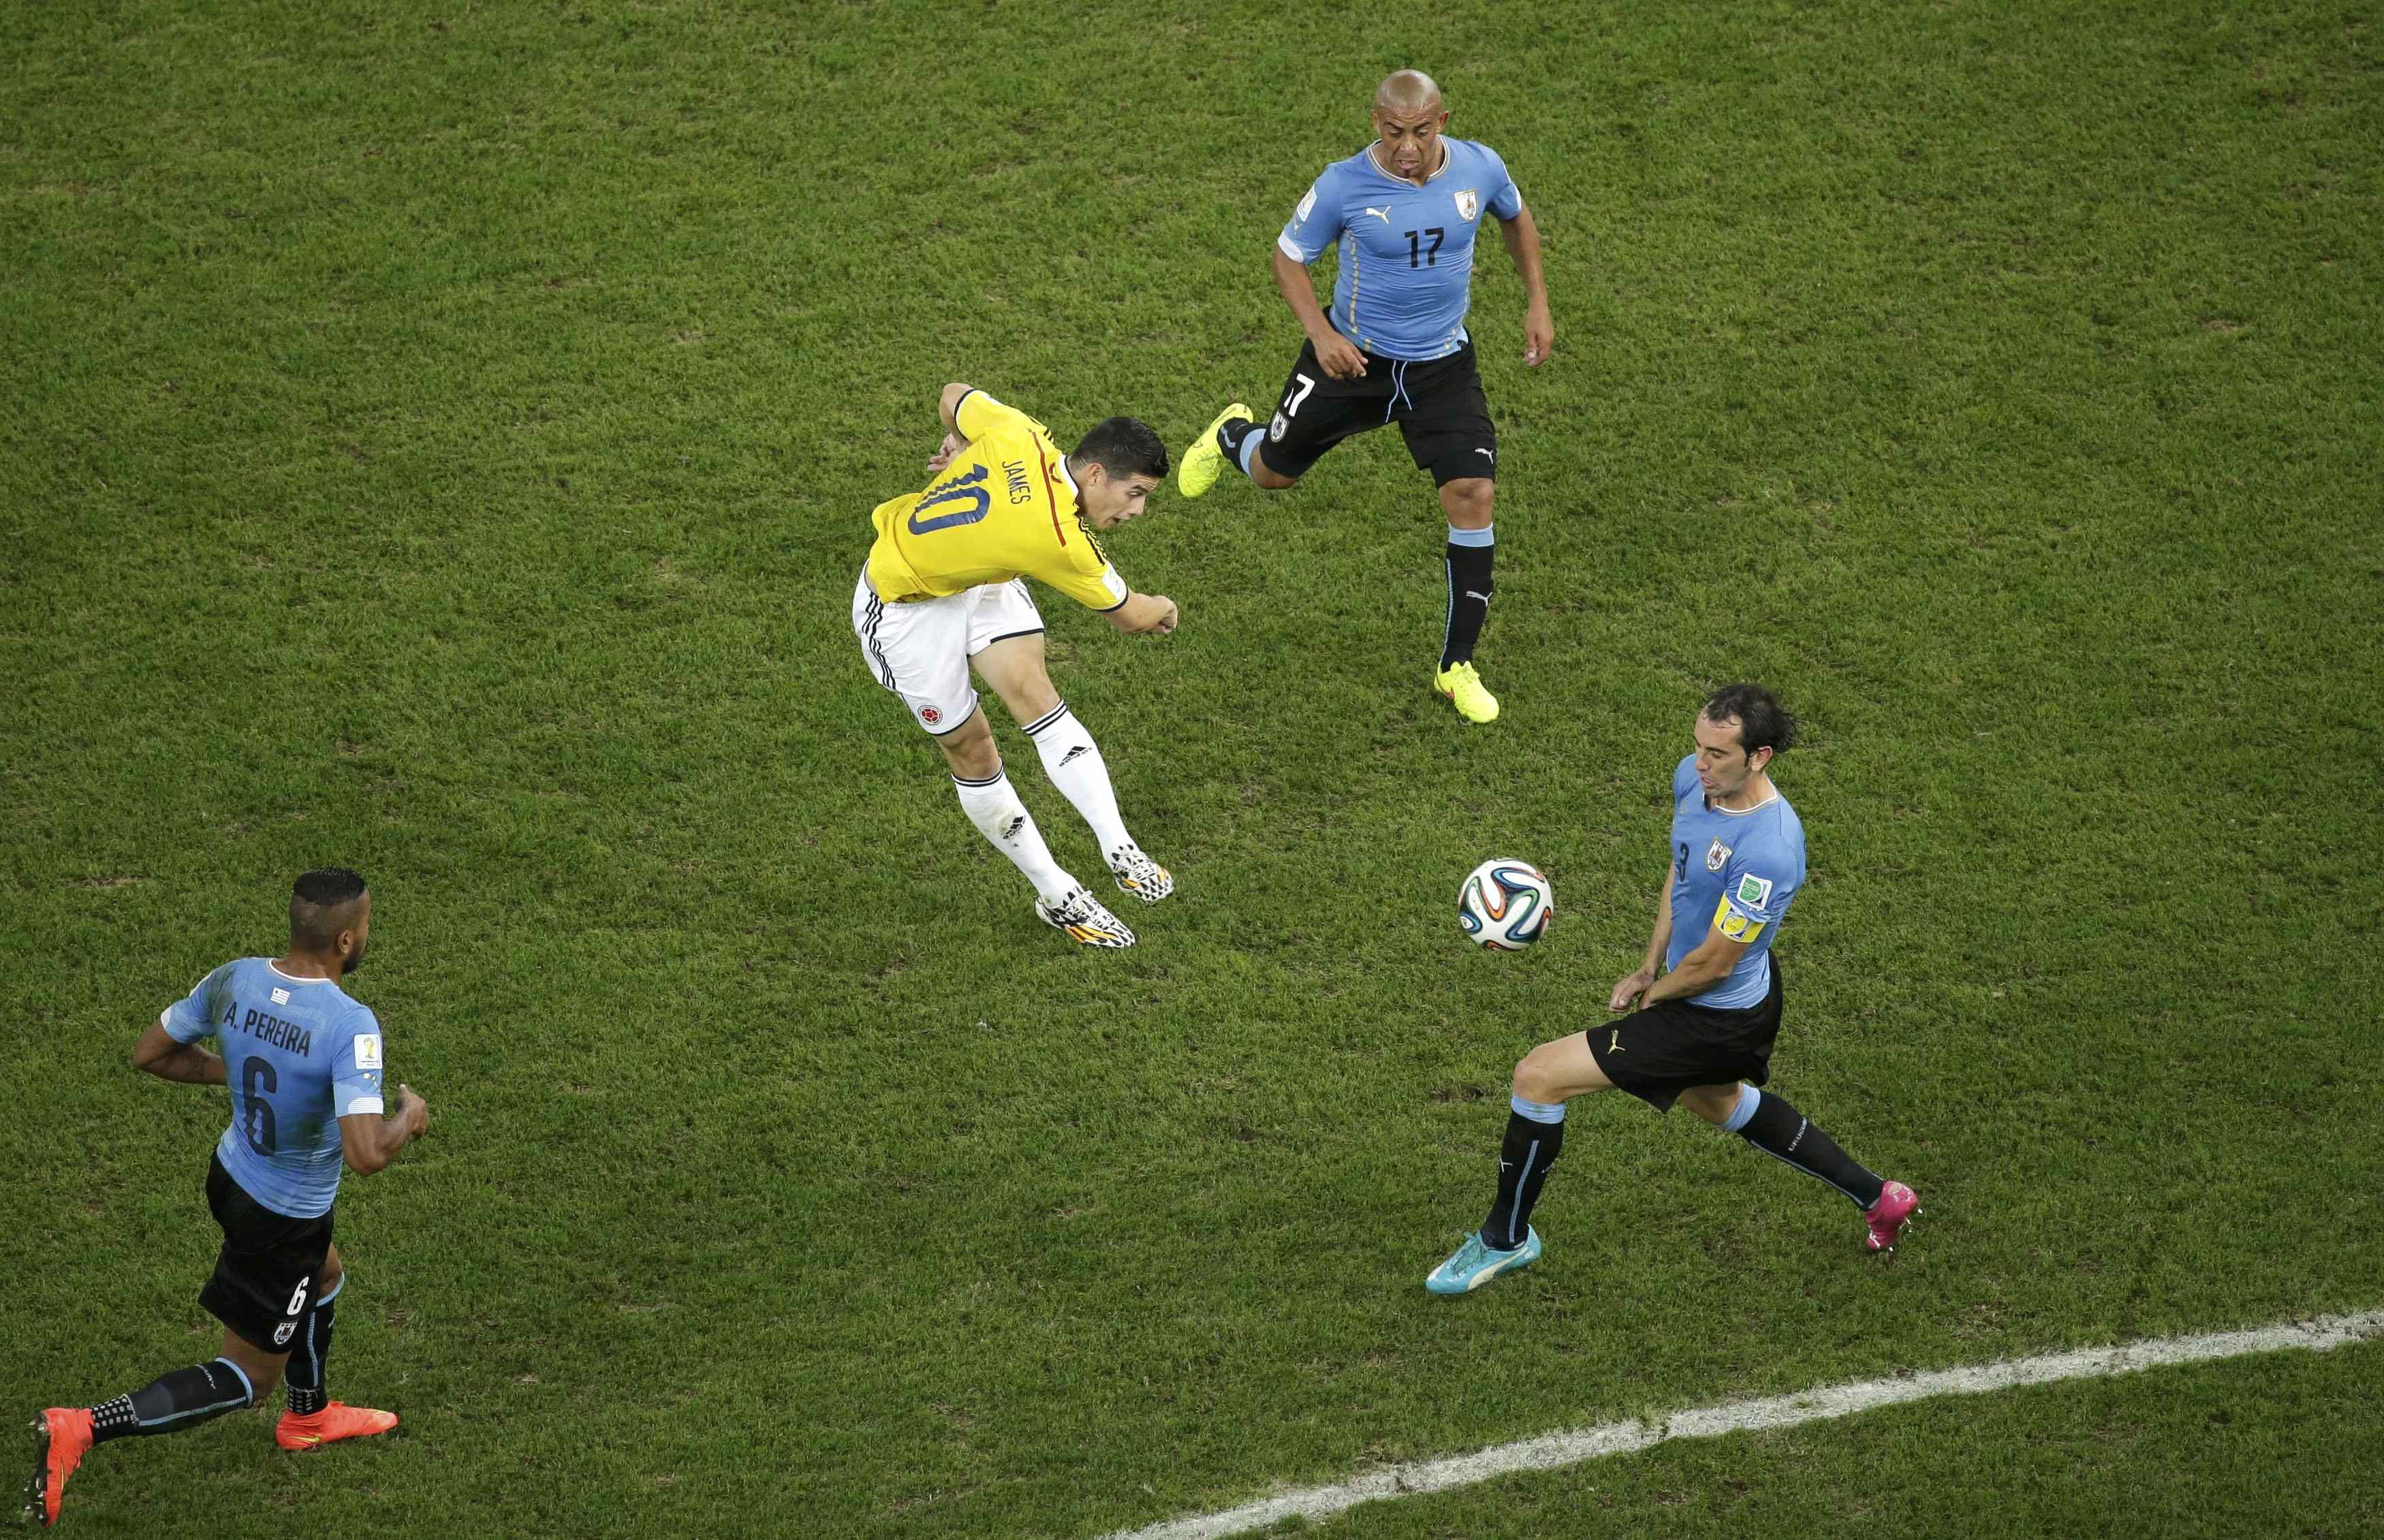 Colombia's James Rodriguez scores a goal past Uruguay's Diego Godin, Alvaro Pereira, and Egidio Arevalo Rios during their game at the Maracana stadium in Rio de Janeiro on June 28, 2014.